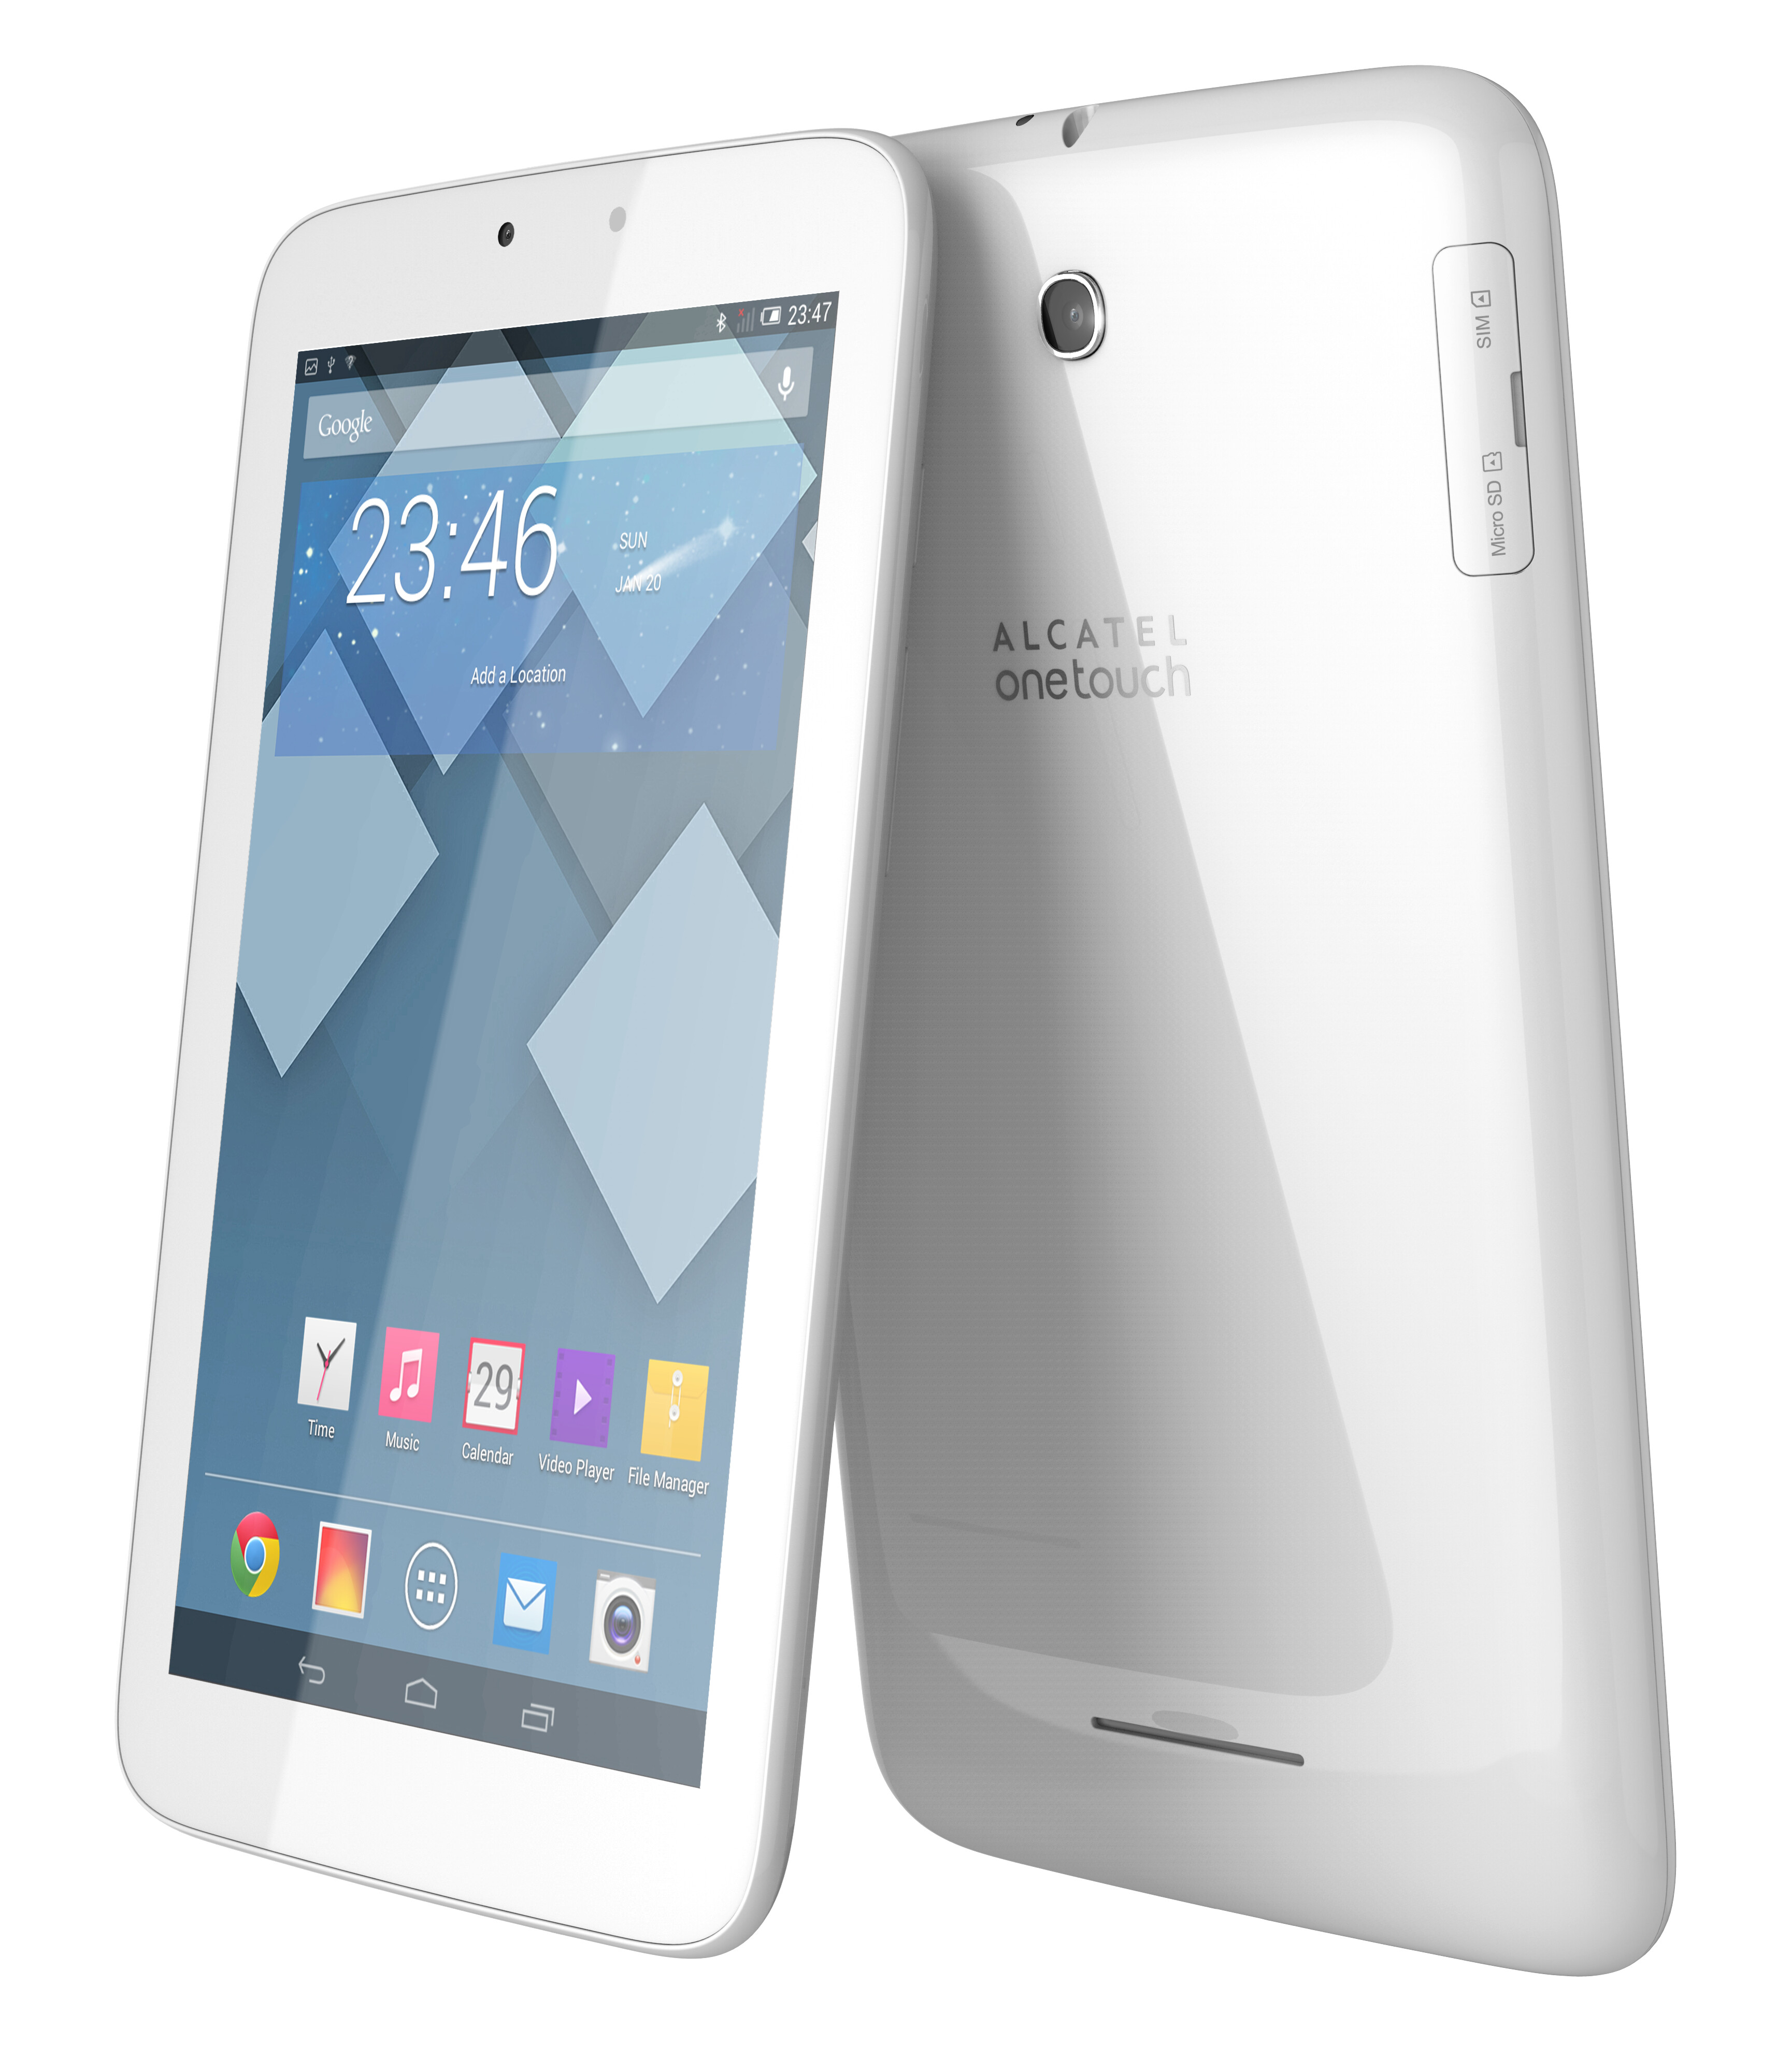 Alcatel unveils the OneTouch POP 7S tablet with 4G LTE connectivity and Android 4.4 KitKat